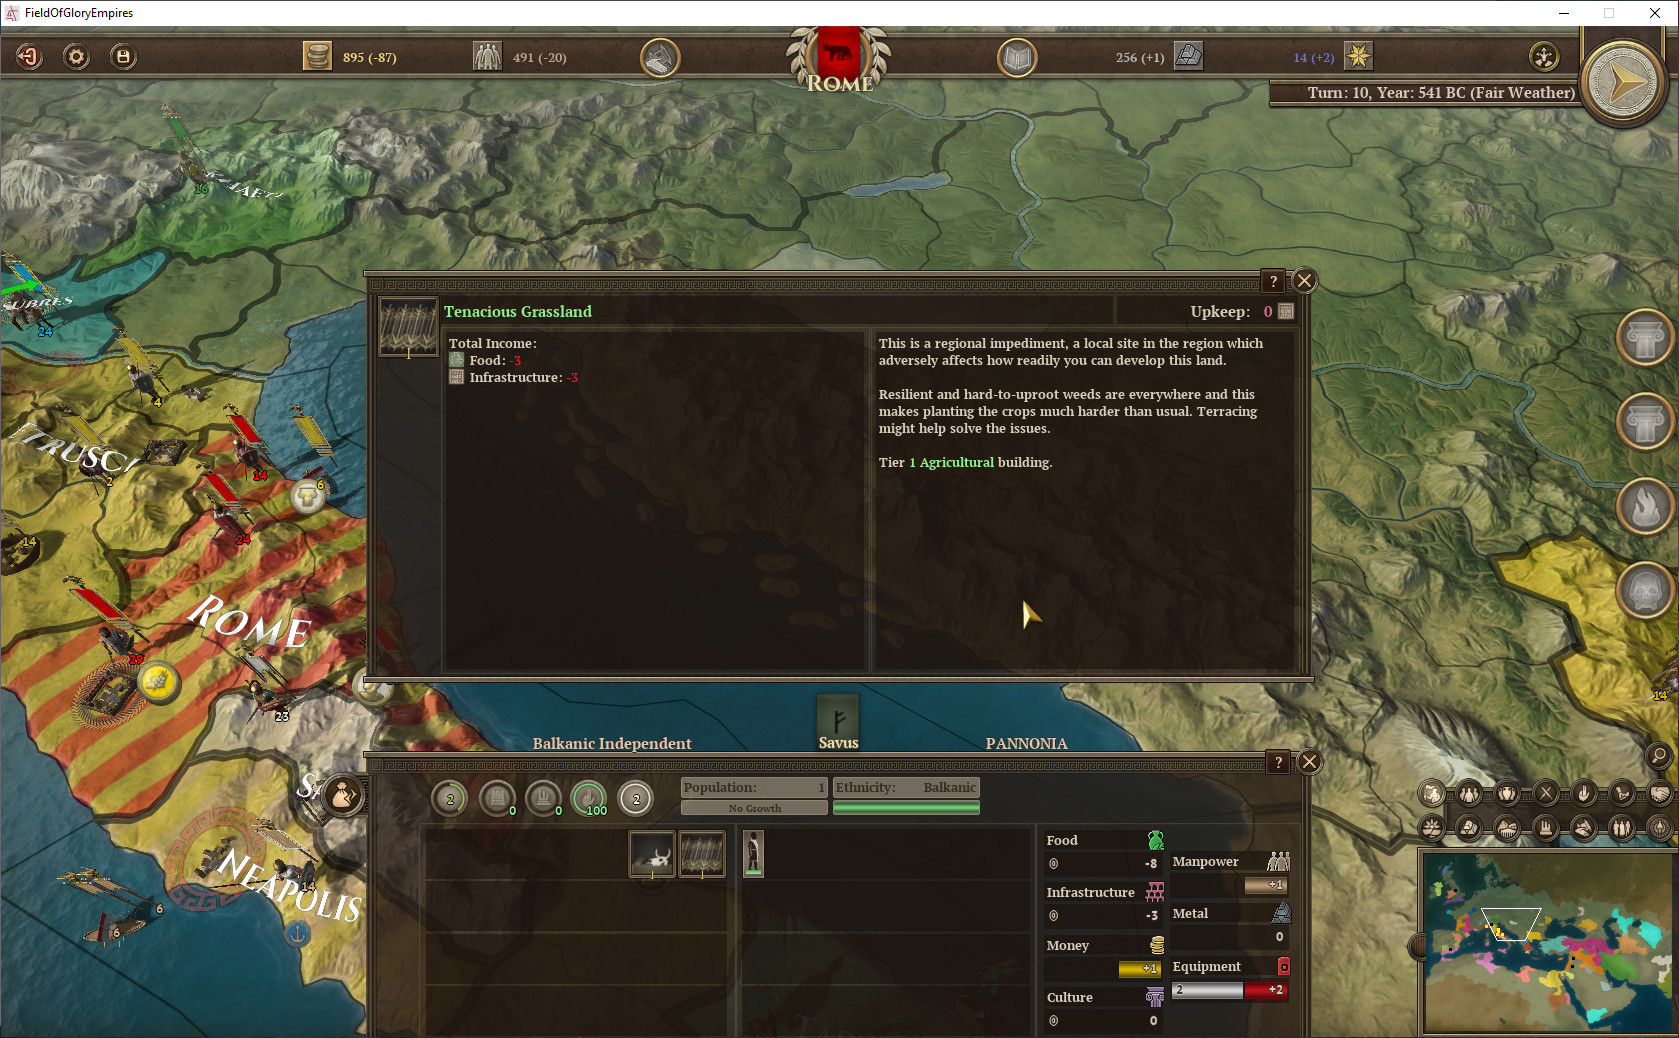 Field of Glory: Empires - Persia 550 - 330 BCE screenshot